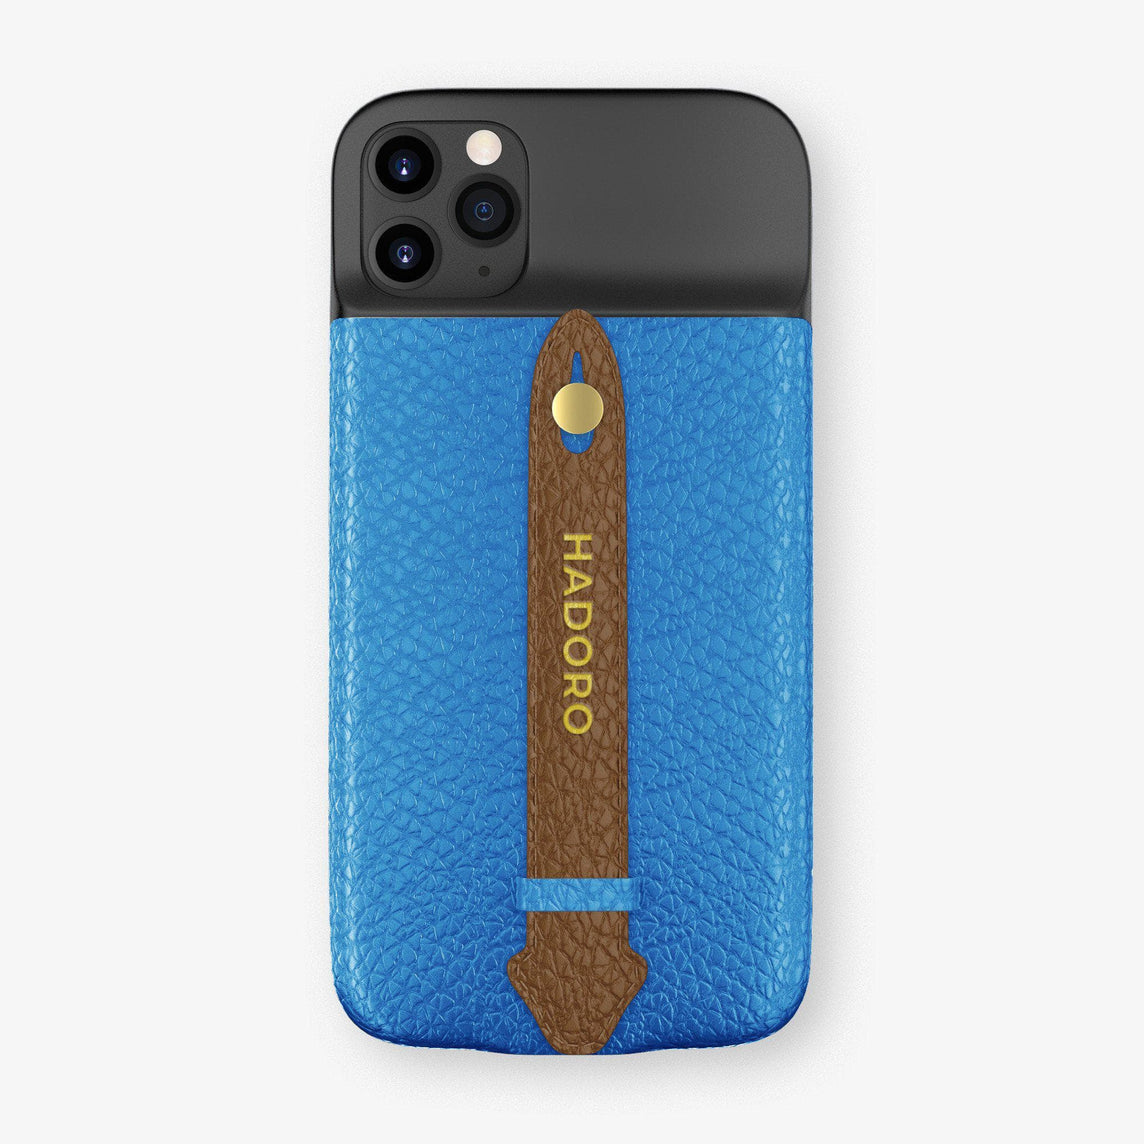 Calfskin Battery Finger Case for iPhone 11 Pro Max | Blue Lagoon/Brown - Yellow Gold without-personalization